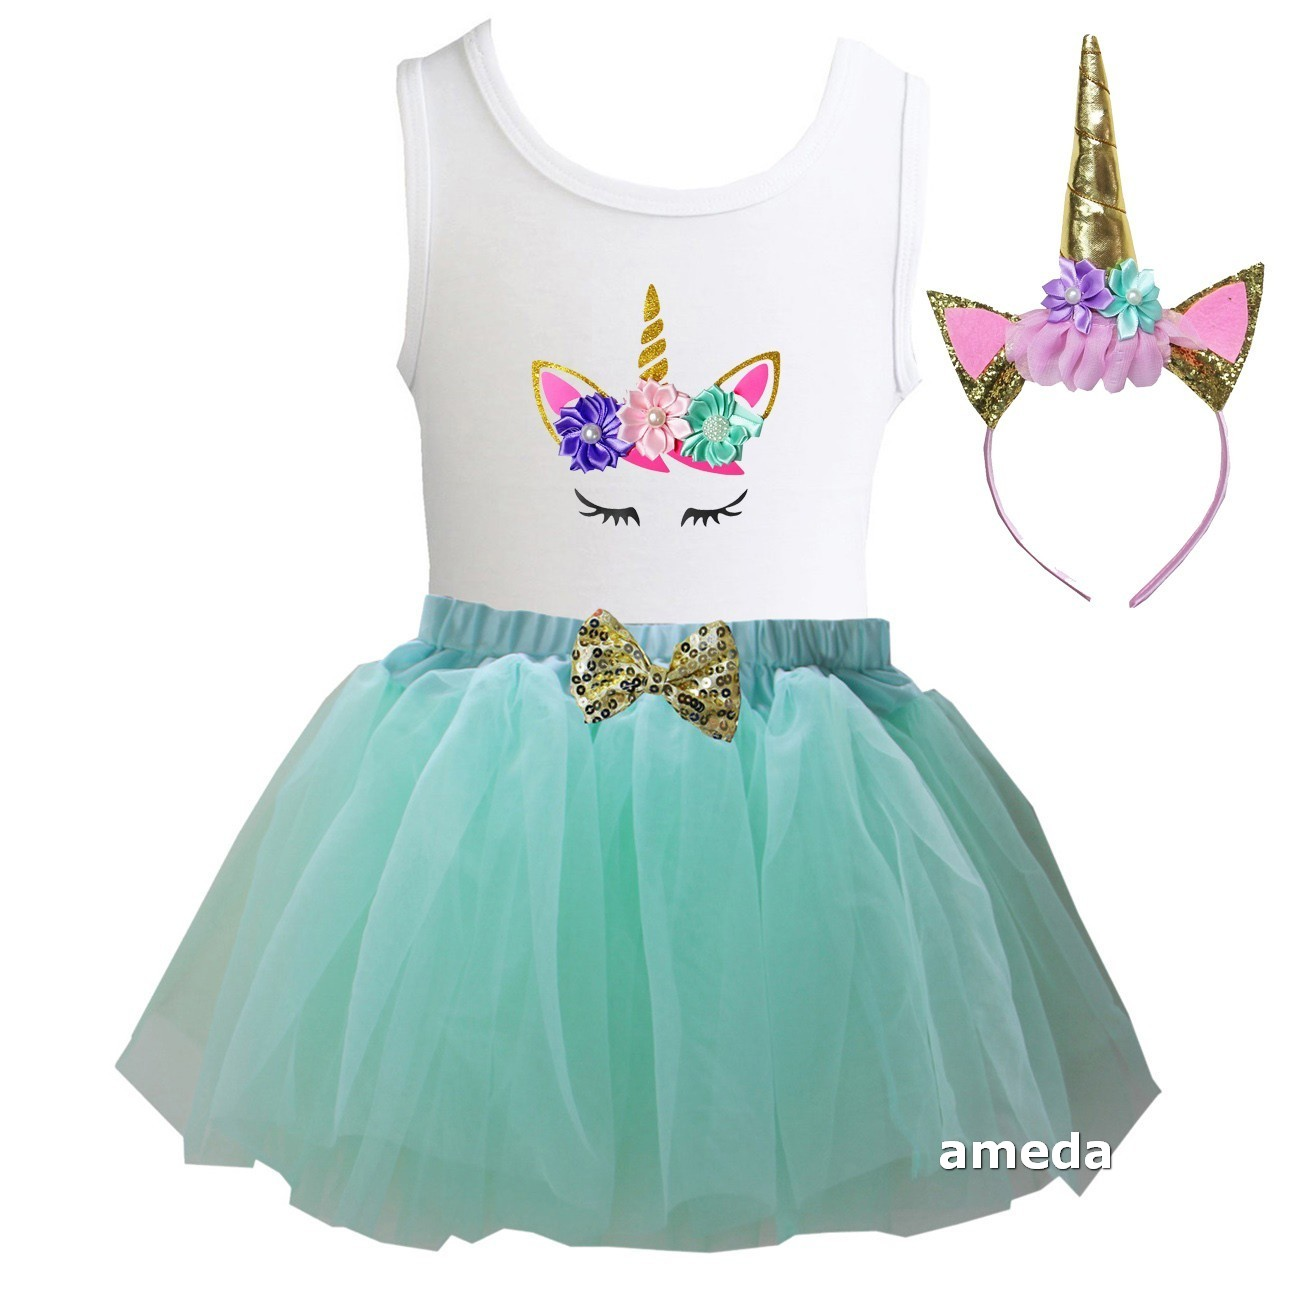 Details About Girls Mint Tulle Tutu 1st